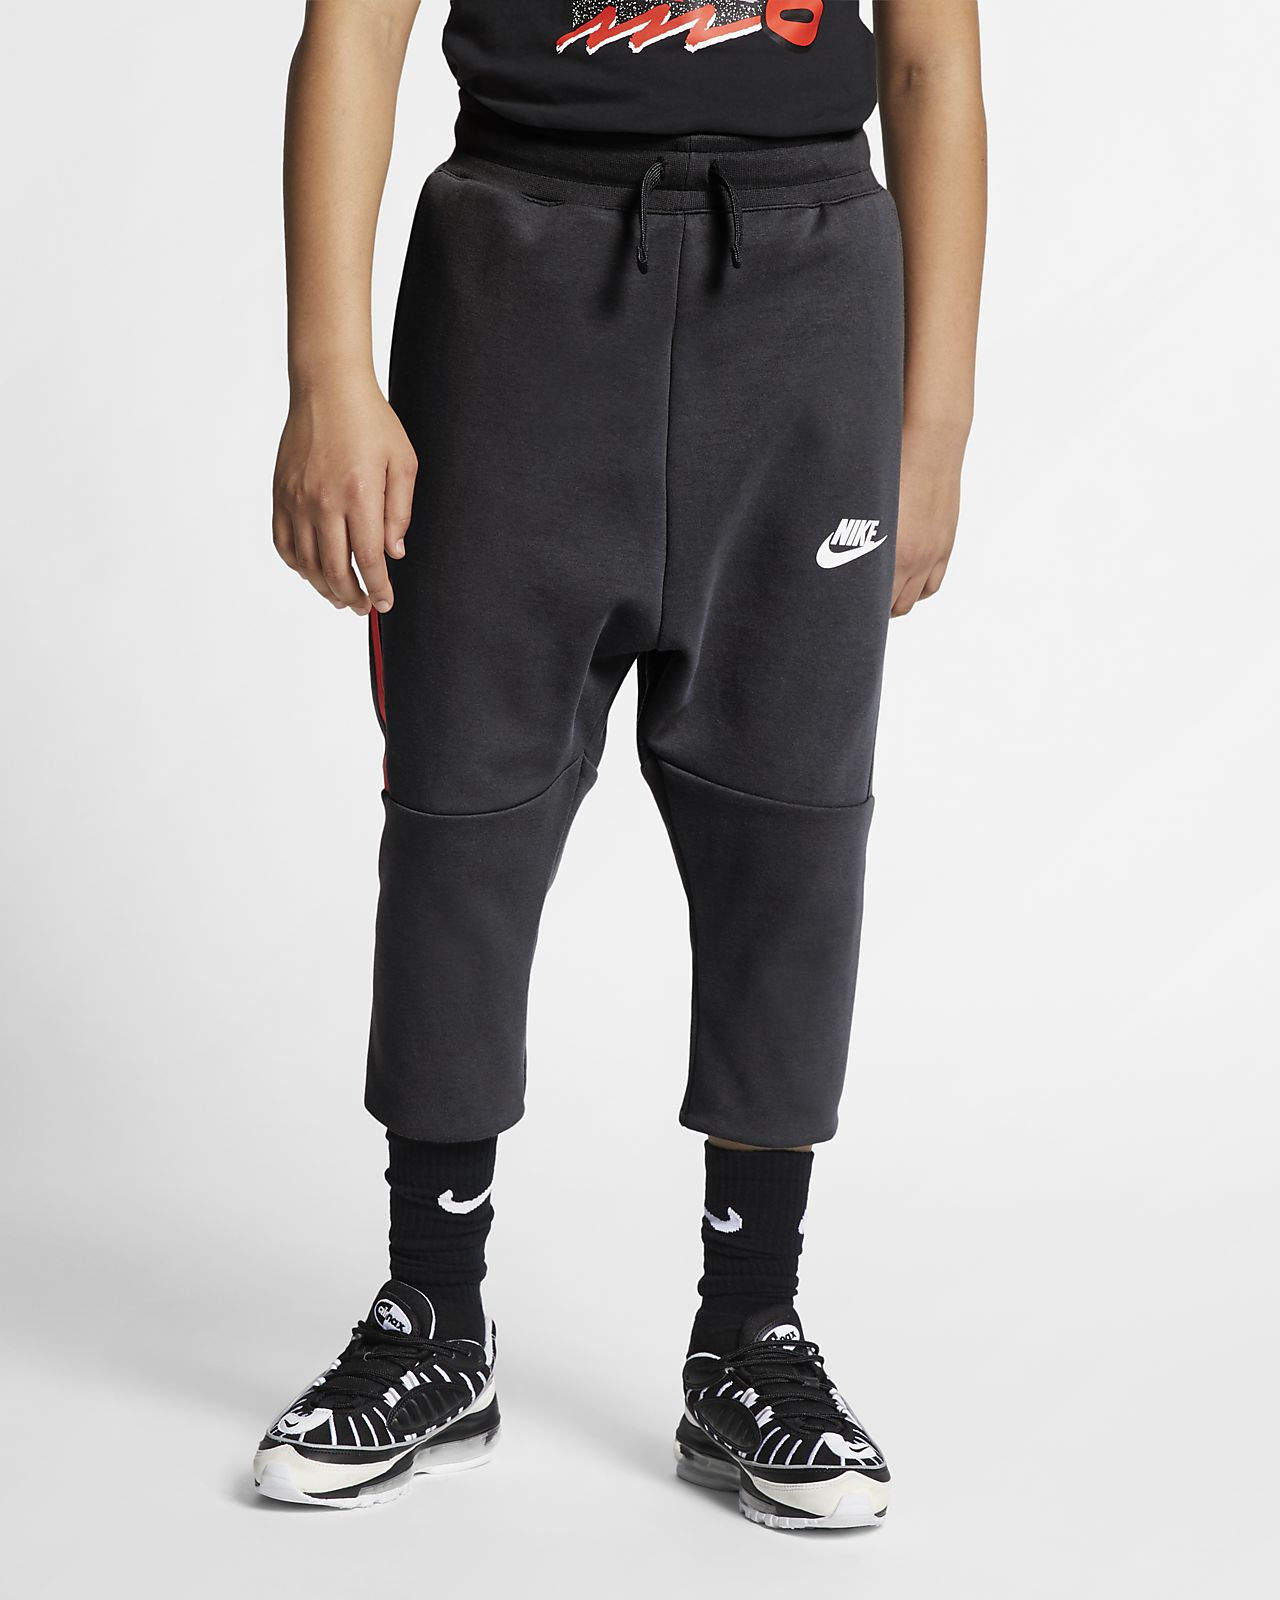 Nike Sportswear Tech Fleece Older Kids' Cropped Trousers